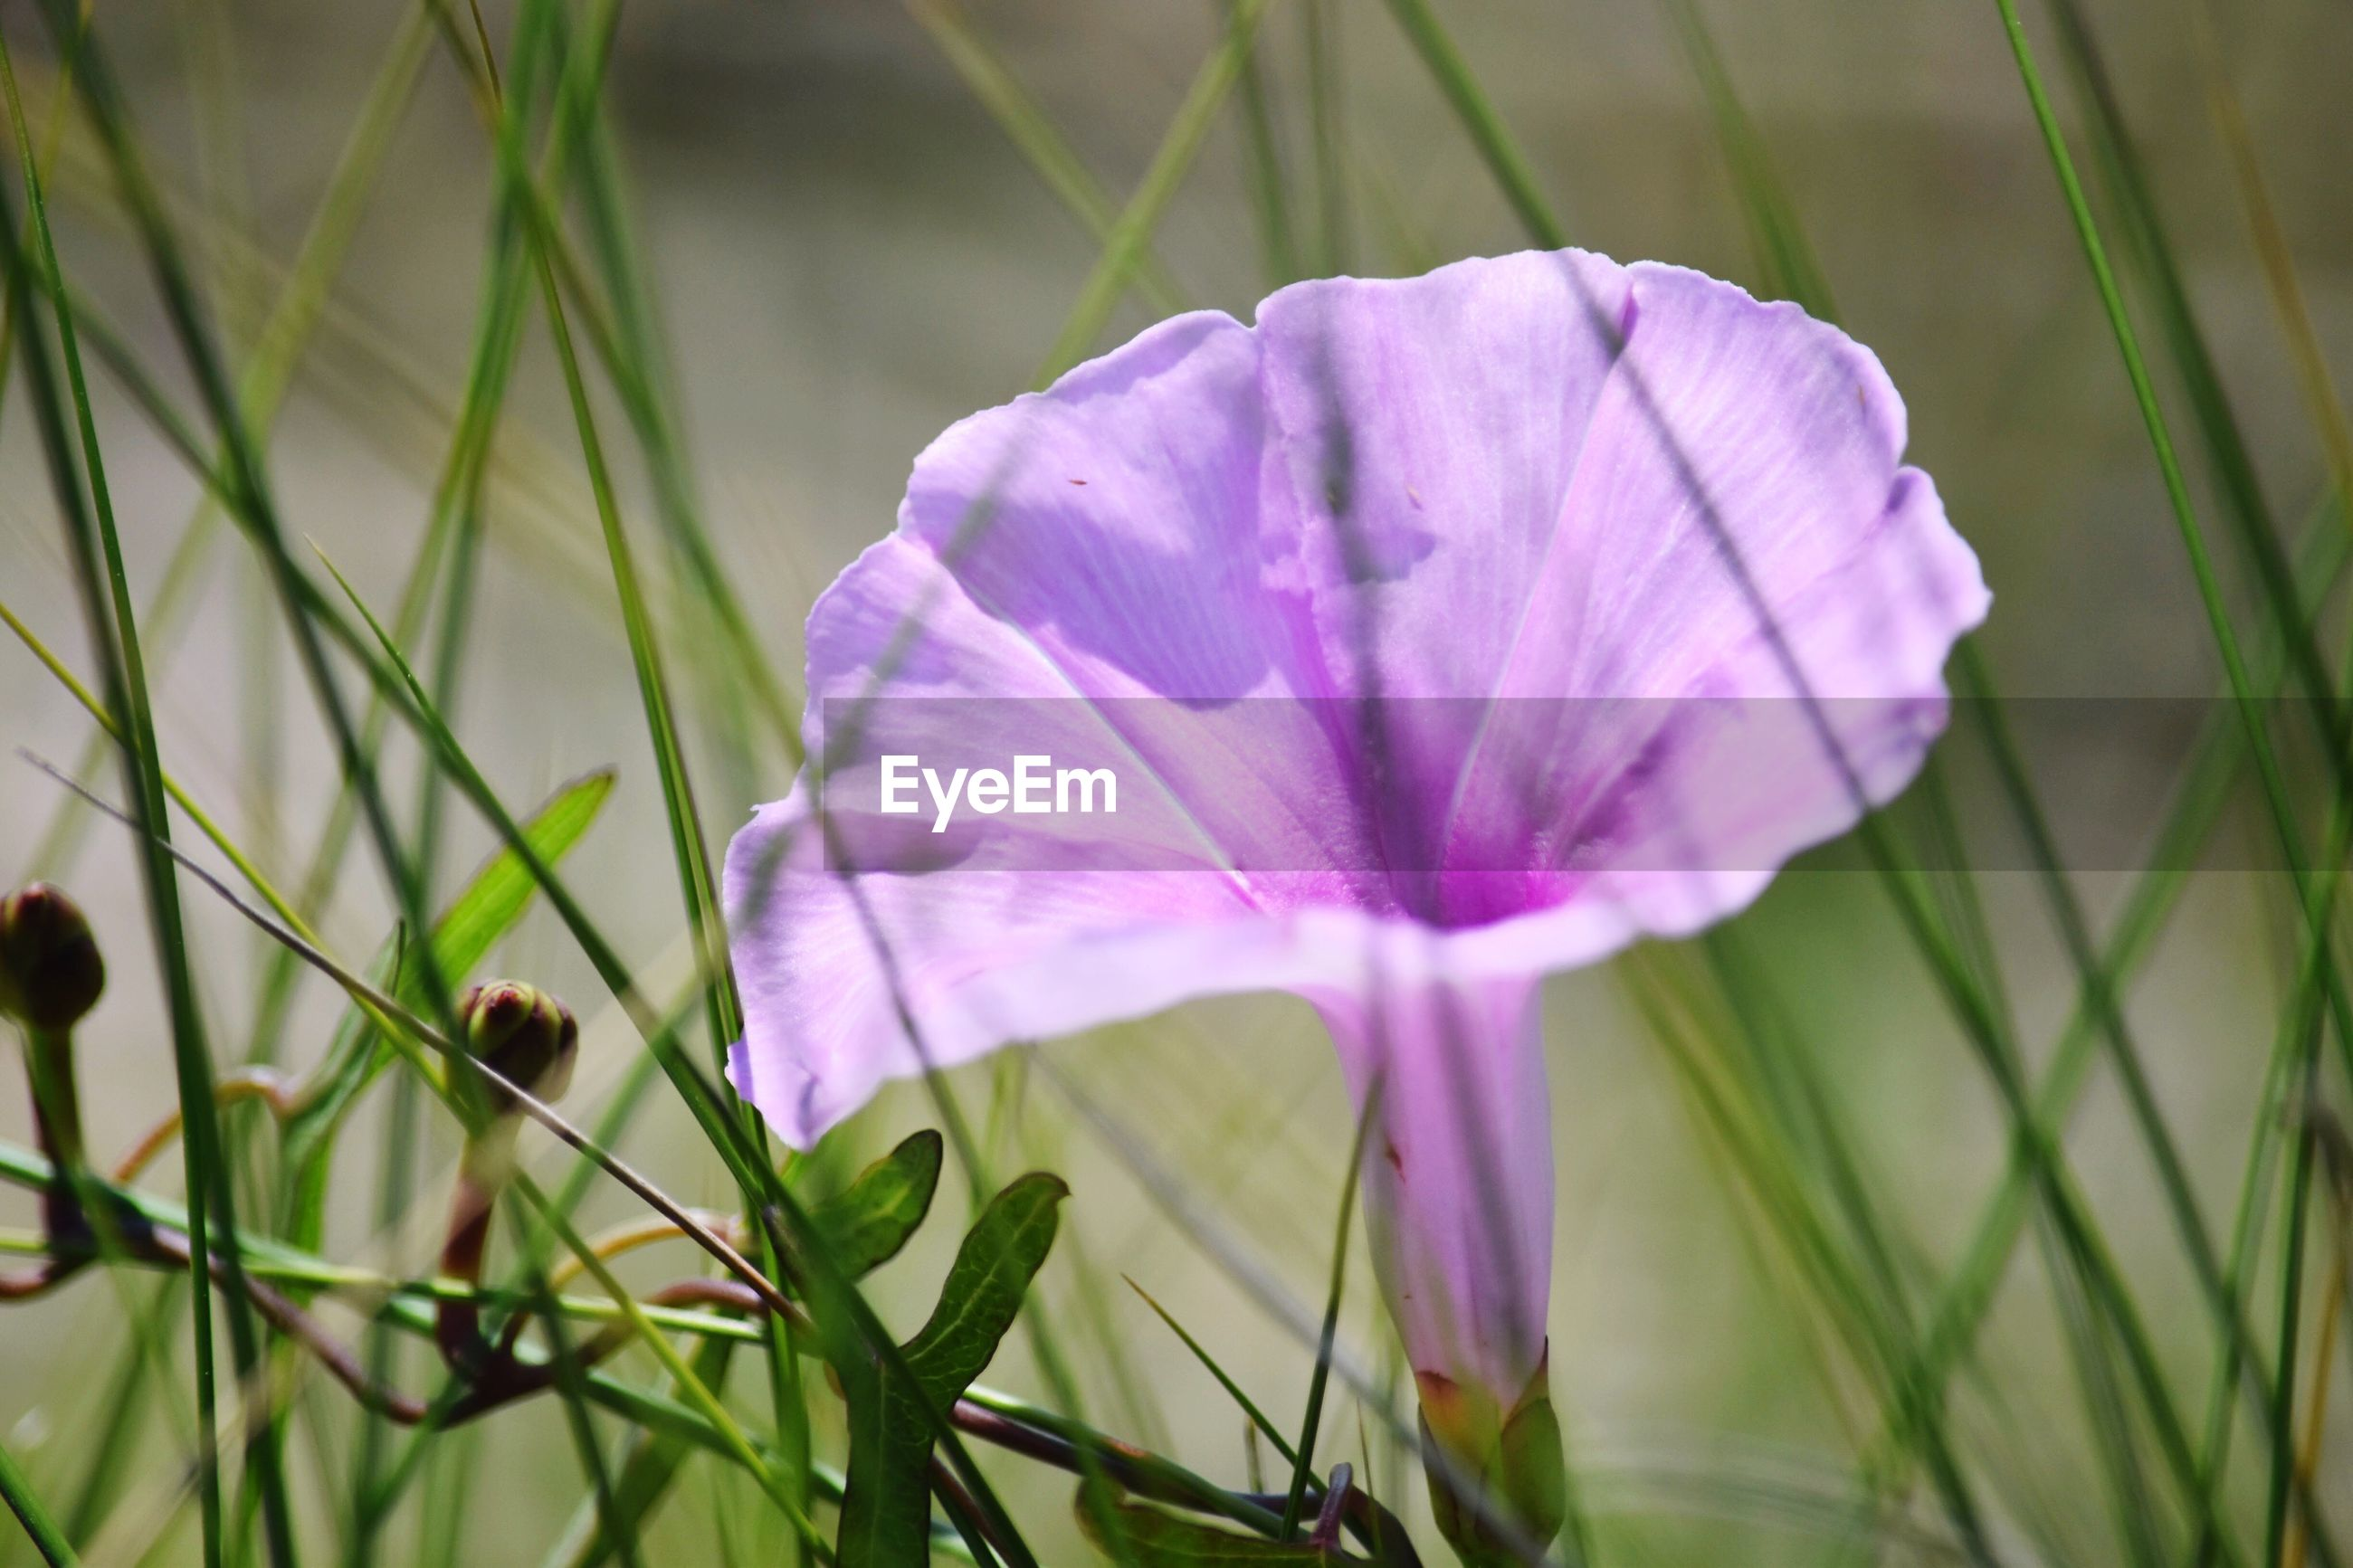 CLOSE-UP OF PURPLE FLOWER BLOOMING IN GRASS